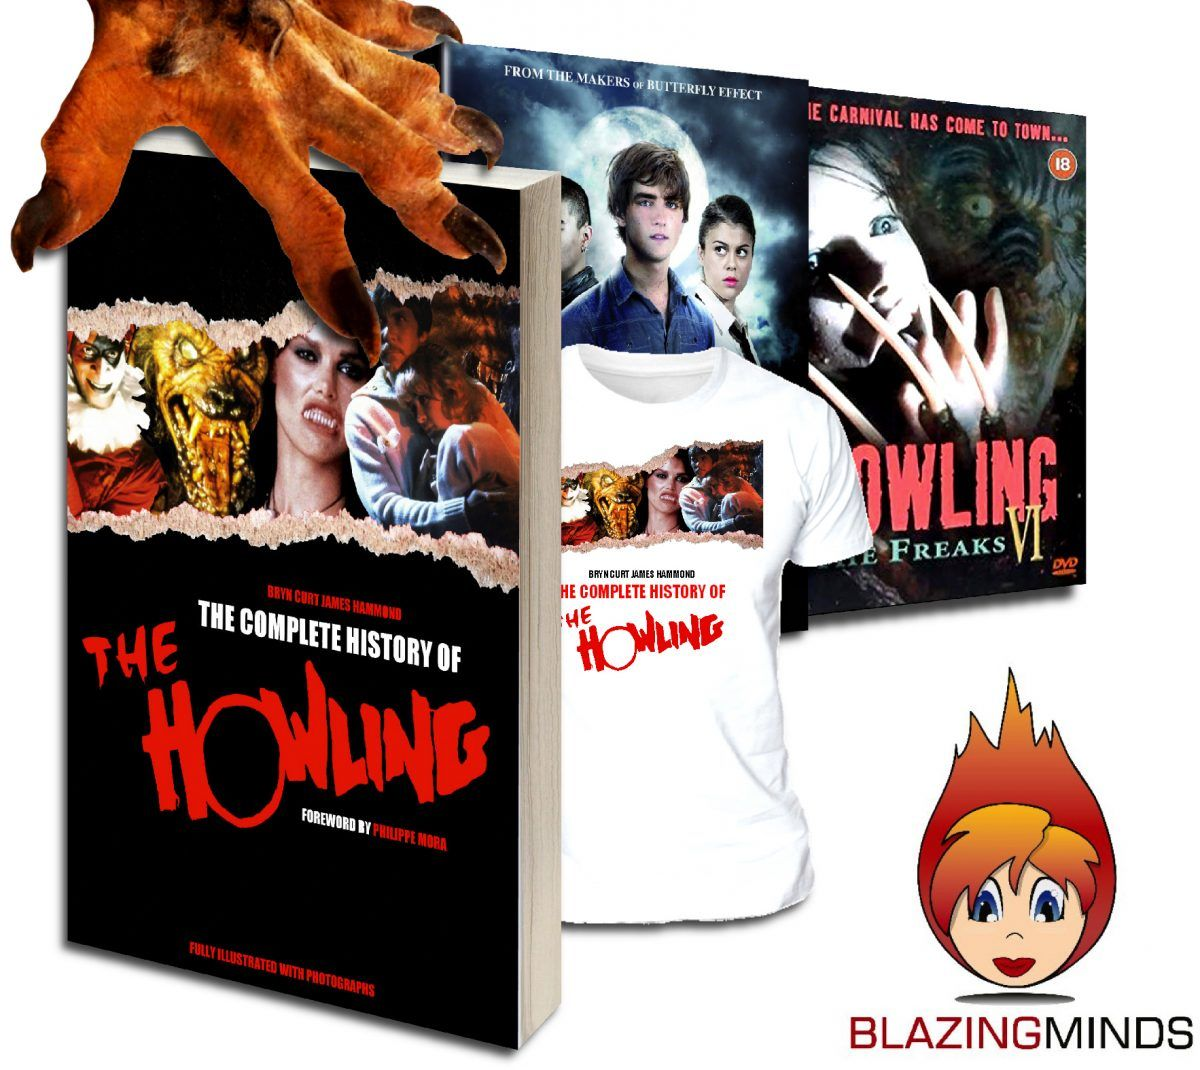 WIN 1 of 3 Complete History of The Howling Prize Bundles